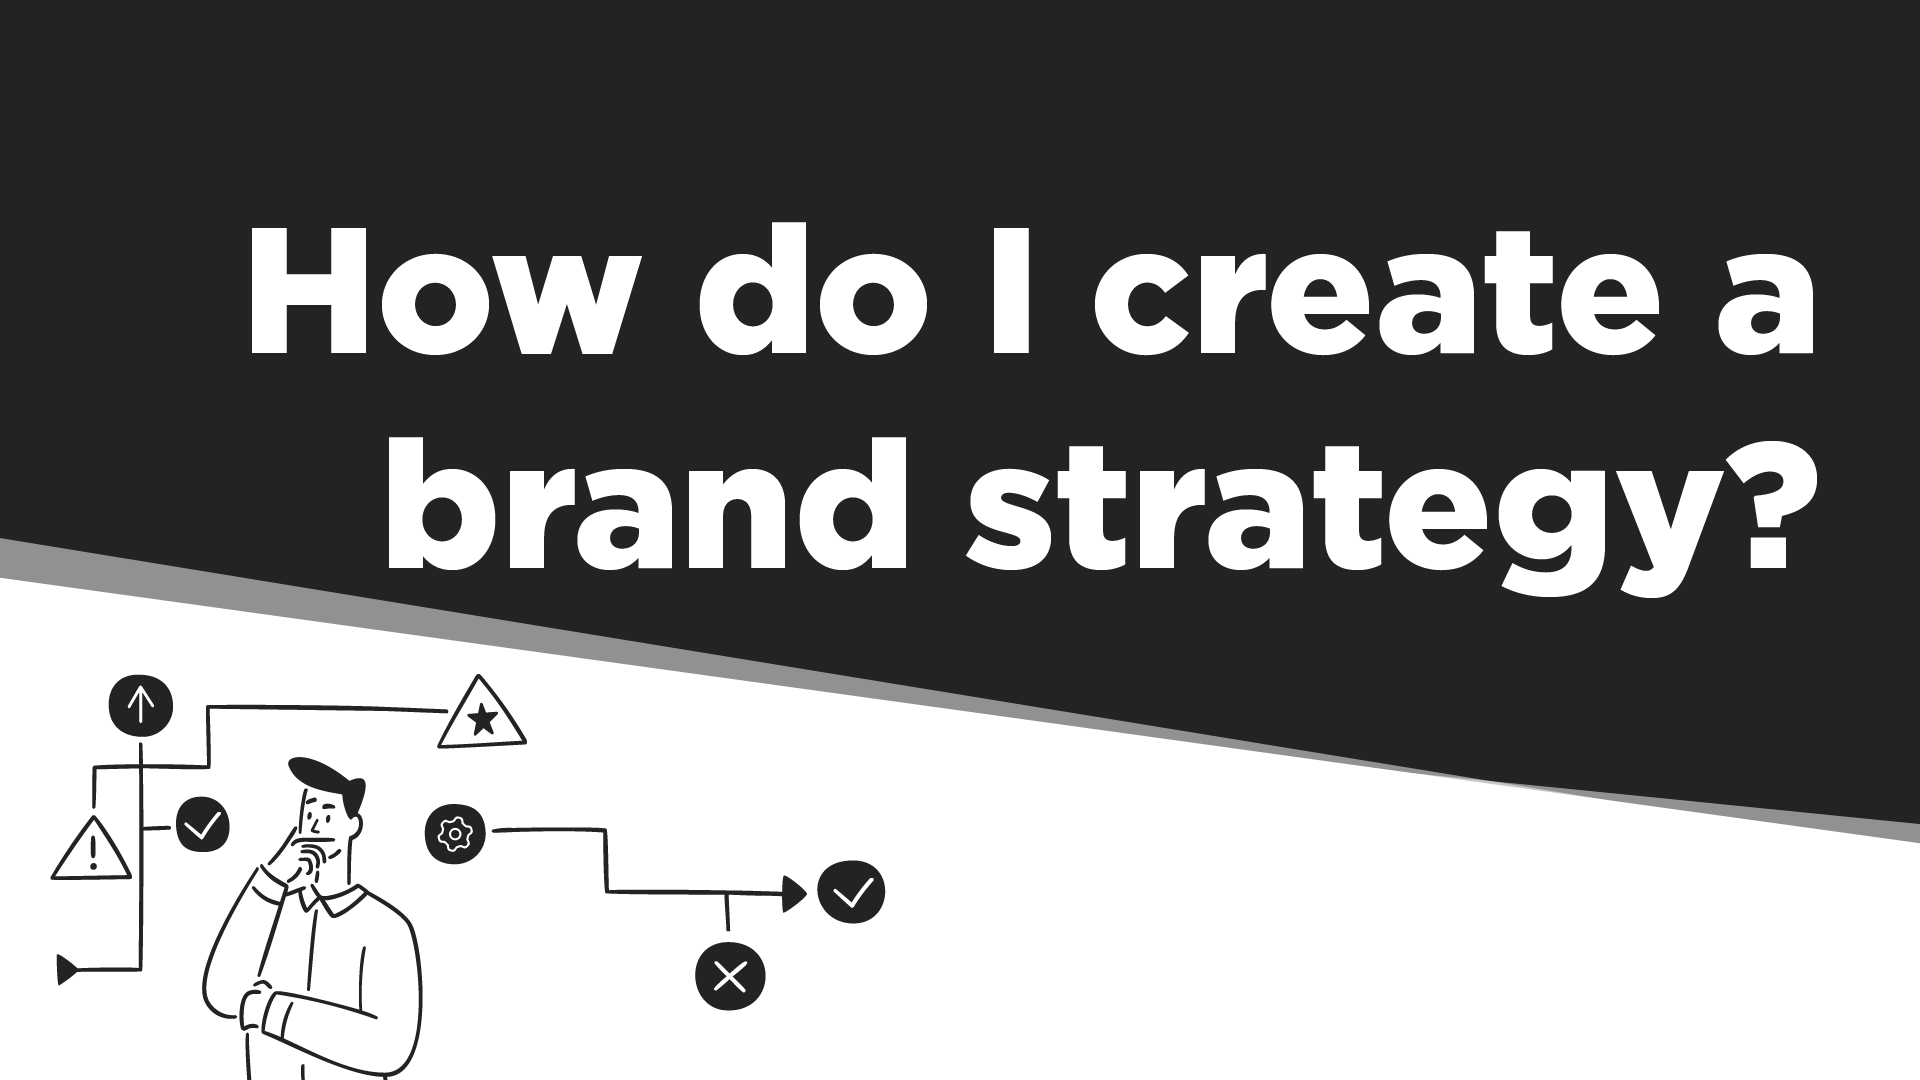 How to I create a brand strategy blog on Pixel Labs website.